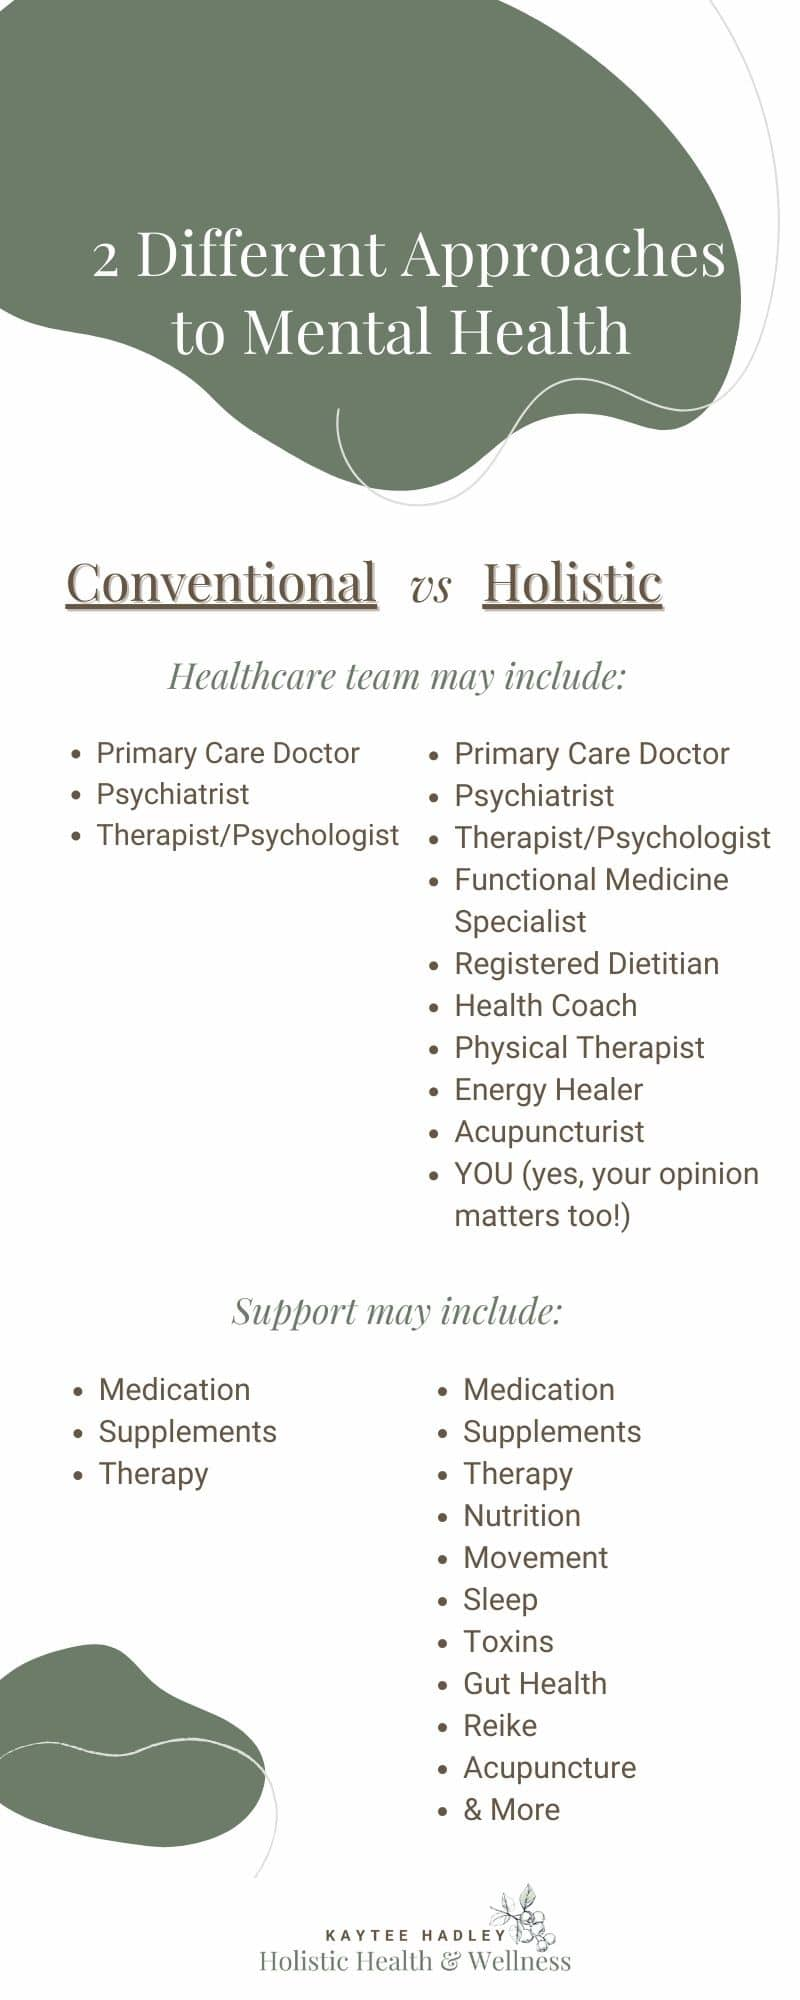 """Infographic """"2 Different Approaches to Mental Health: Conventional vs Holistic"""" describes differences in healthcare team and support"""